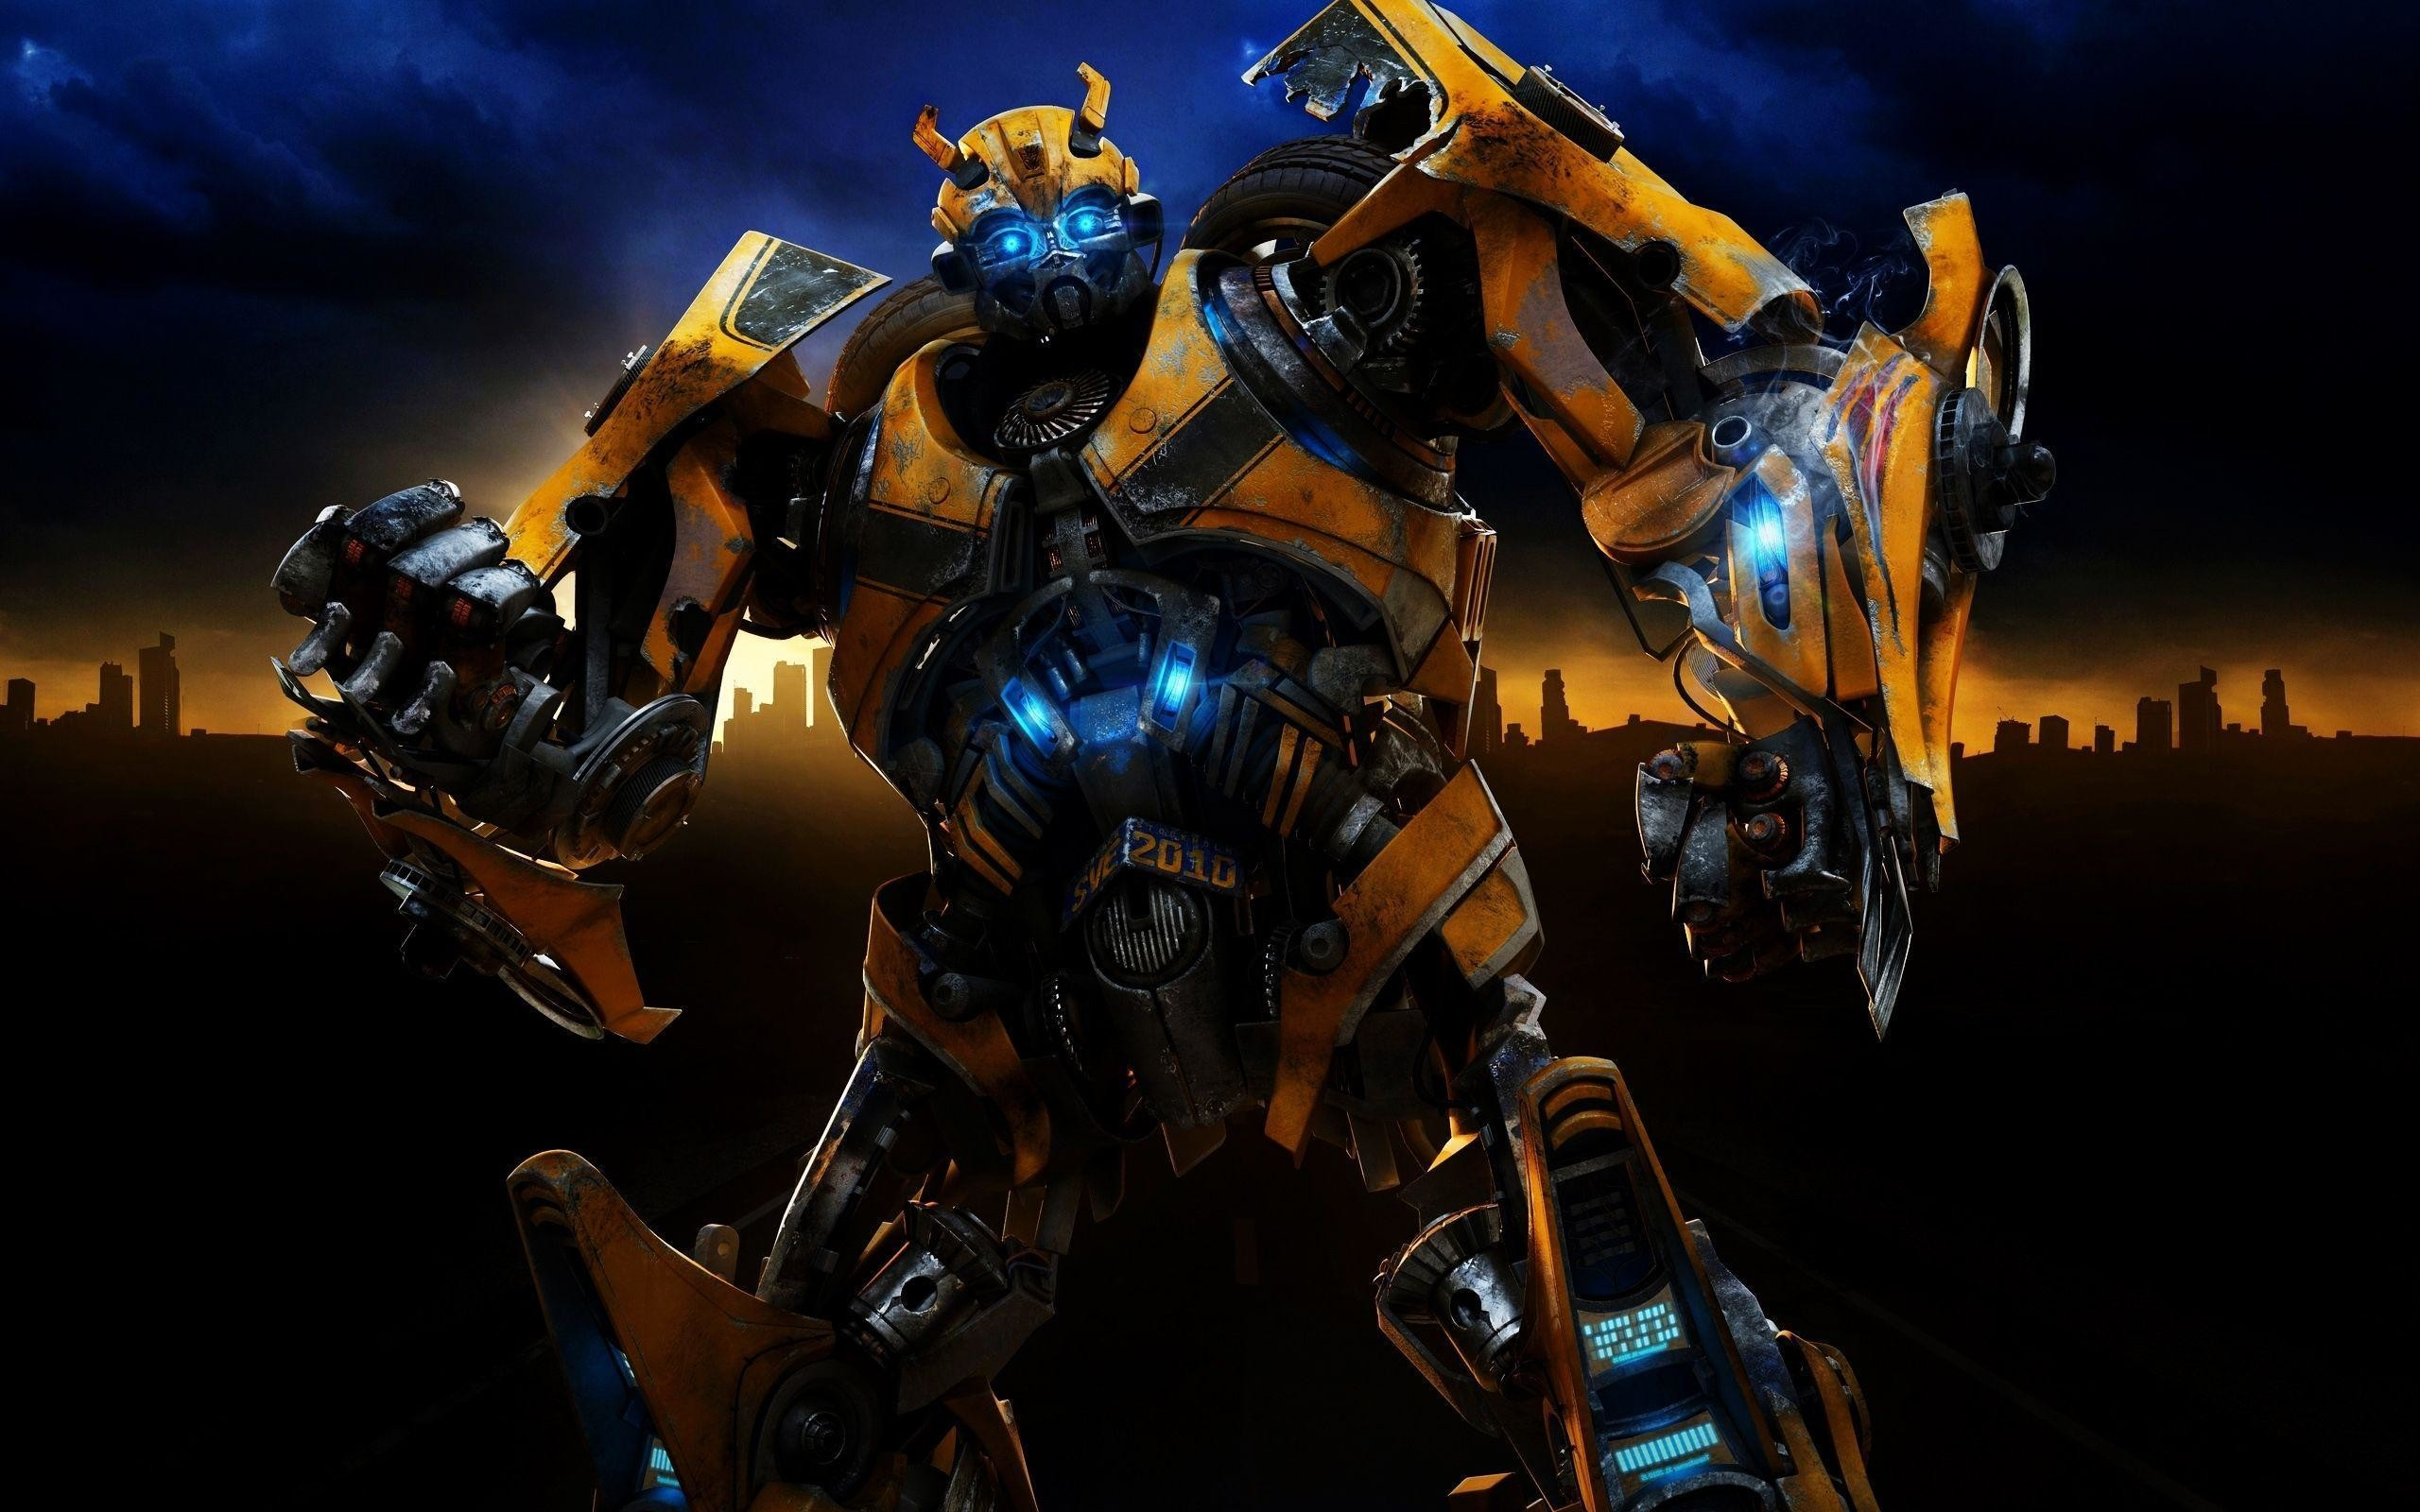 2560x1600 Bumblebee Wallpapers Free Download